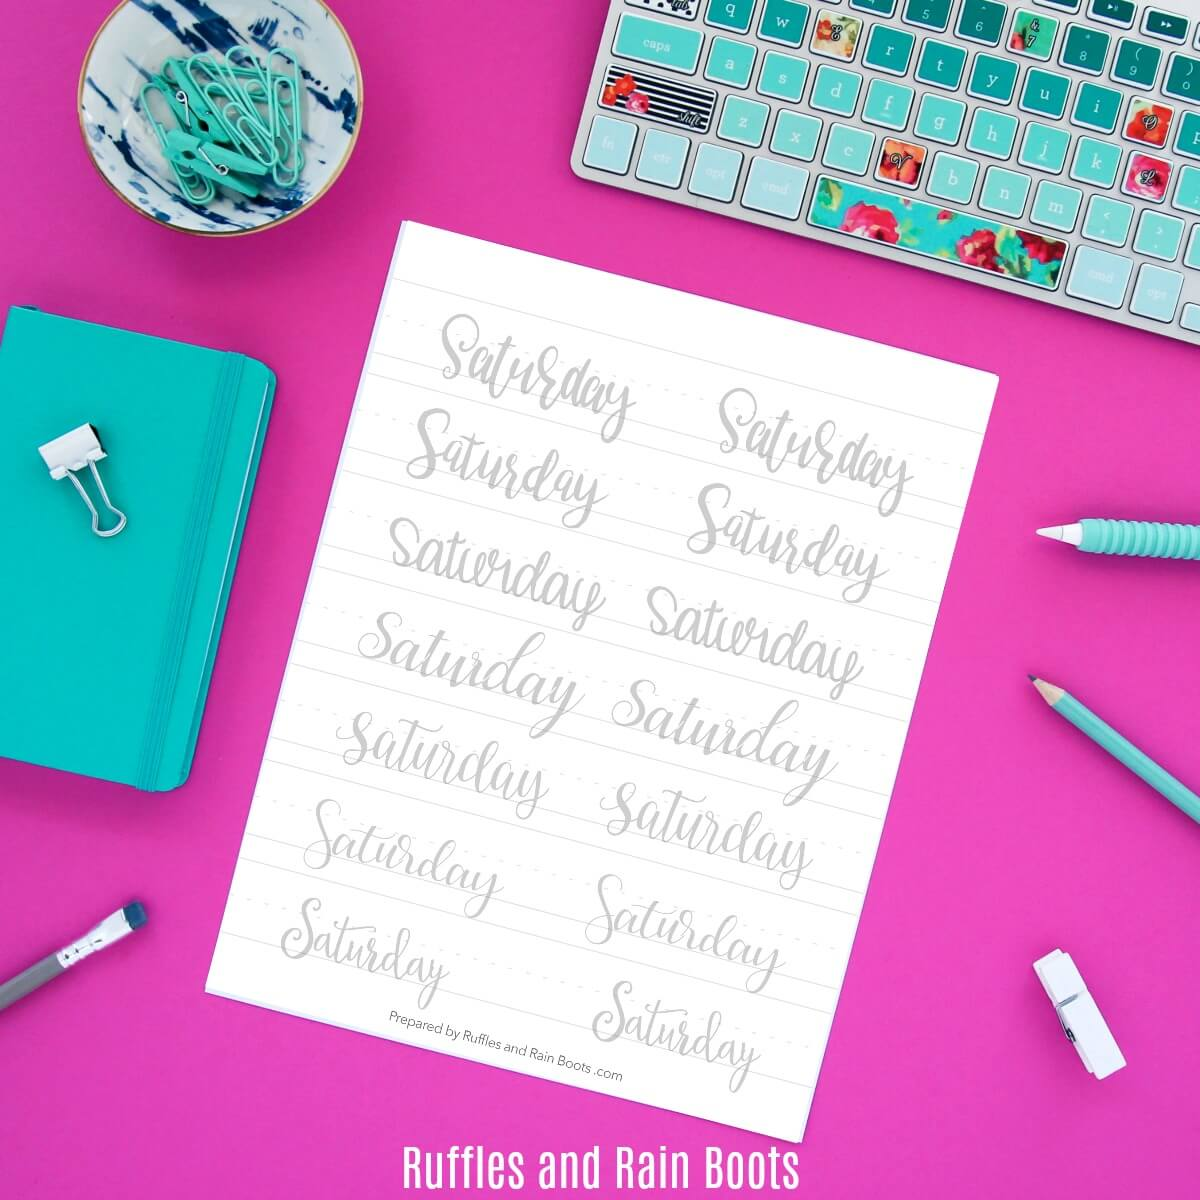 Days of the Week Hand Lettering Practice Sheets Free Printable by Ruffles and Rain Boots